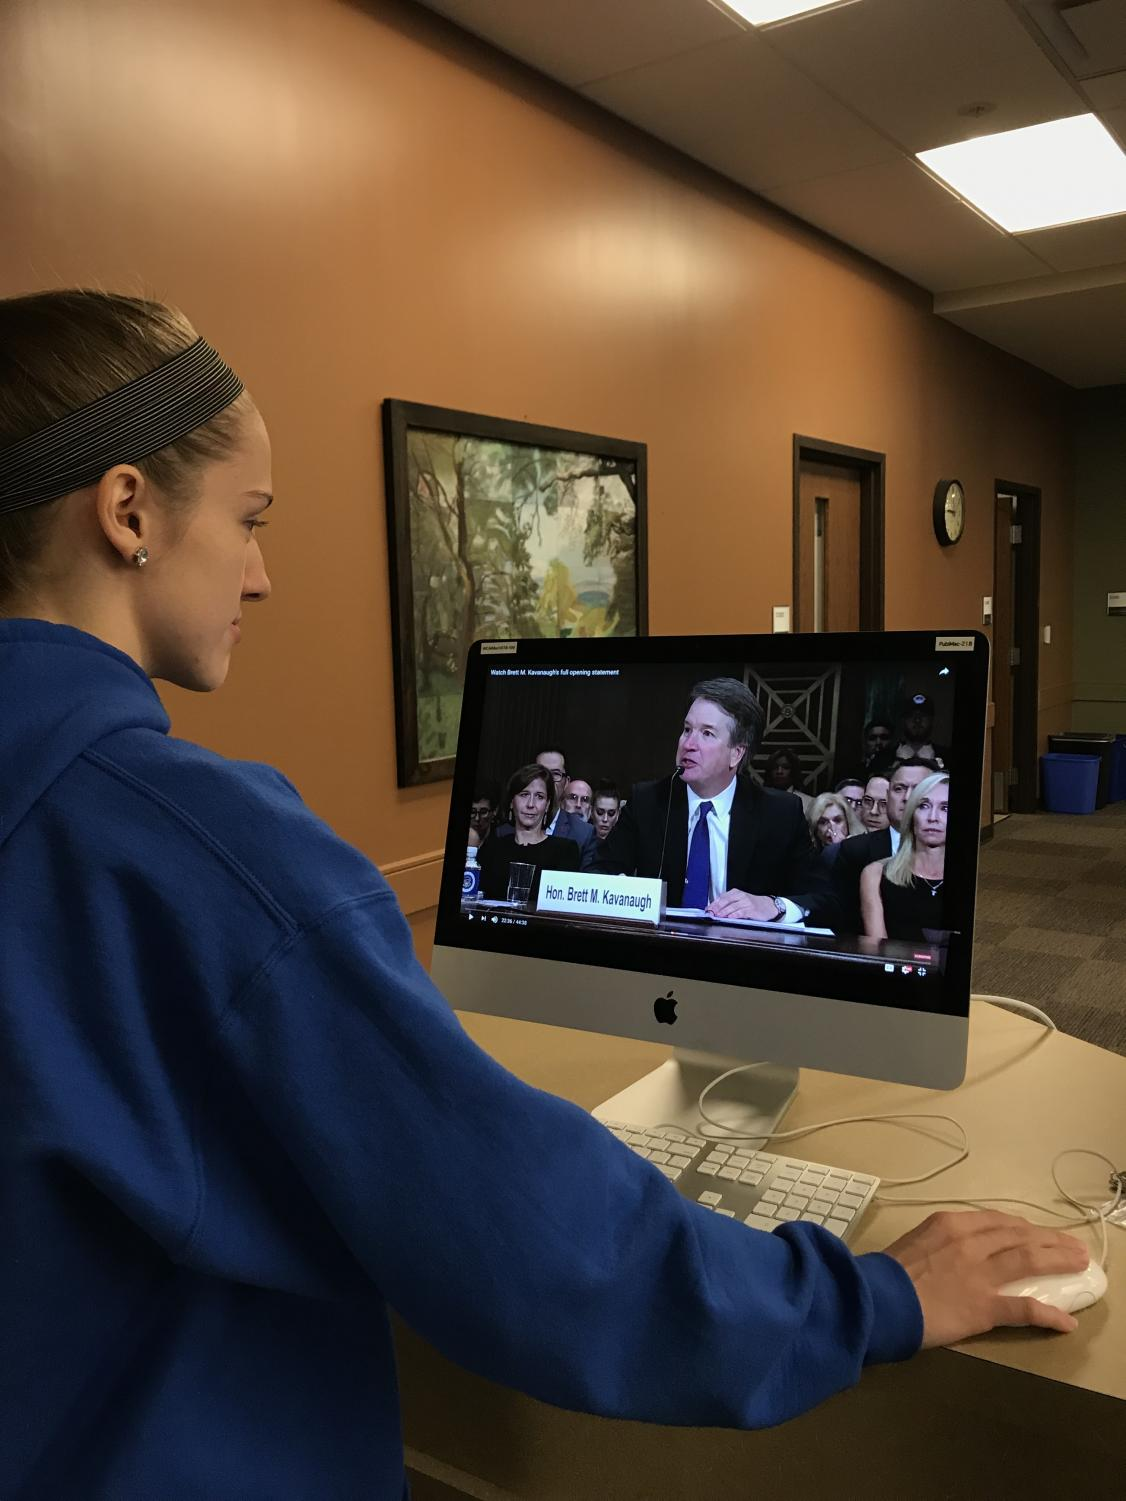 Junior, Allison Hardin, watches the Kavanaugh hearings on YouTube.